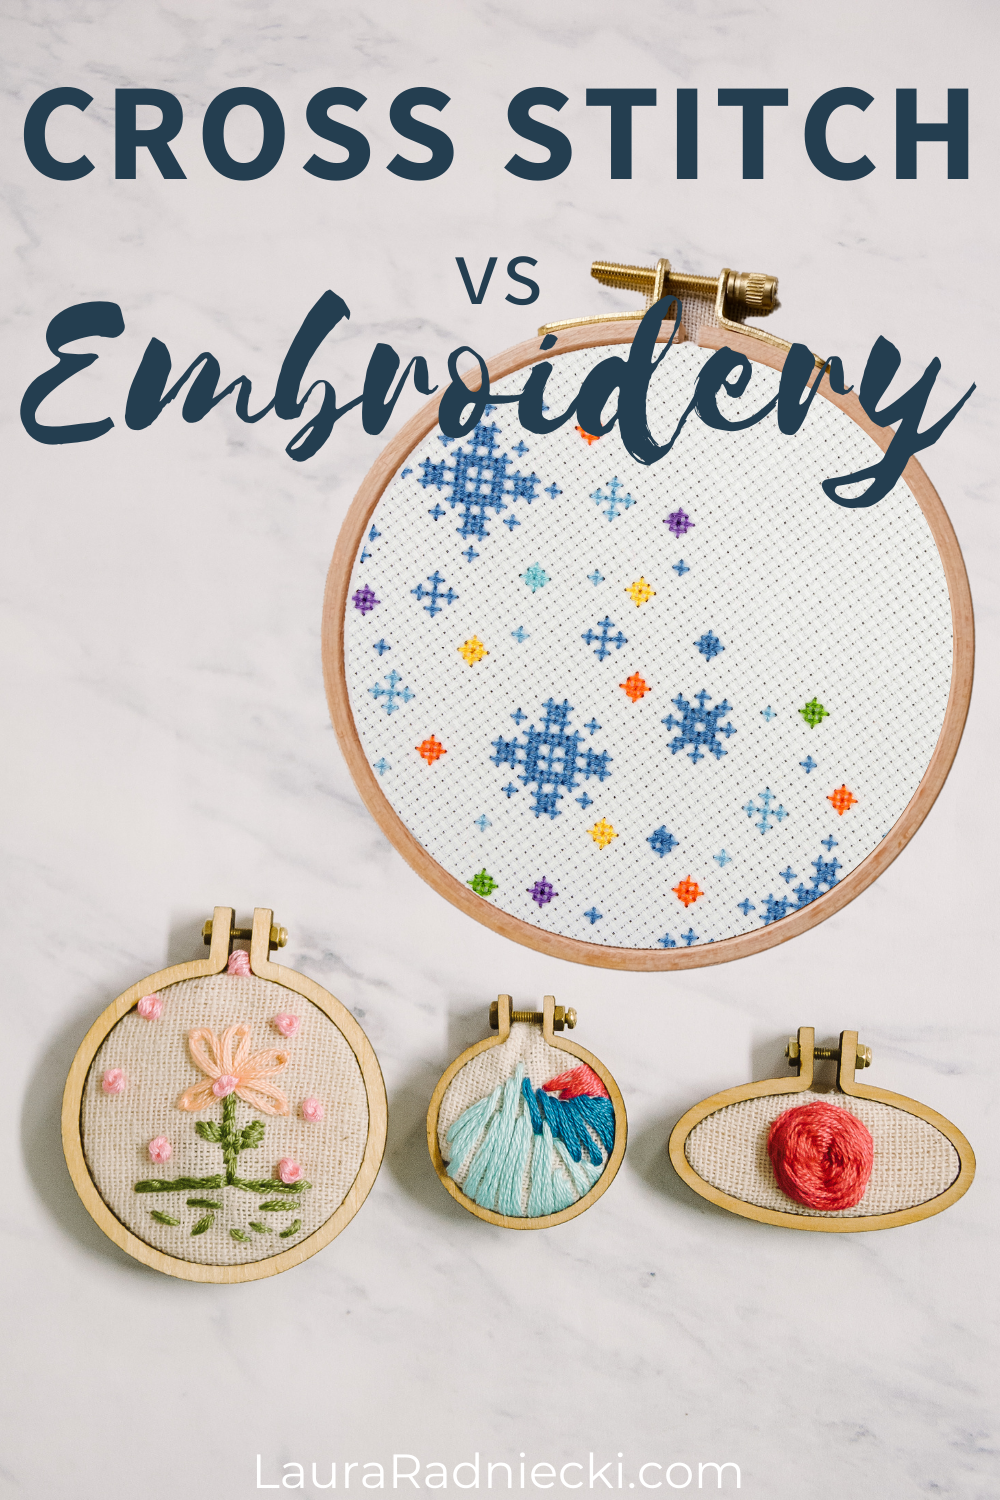 cross stitch vs embroidery   difference between cross stitch and embroidery